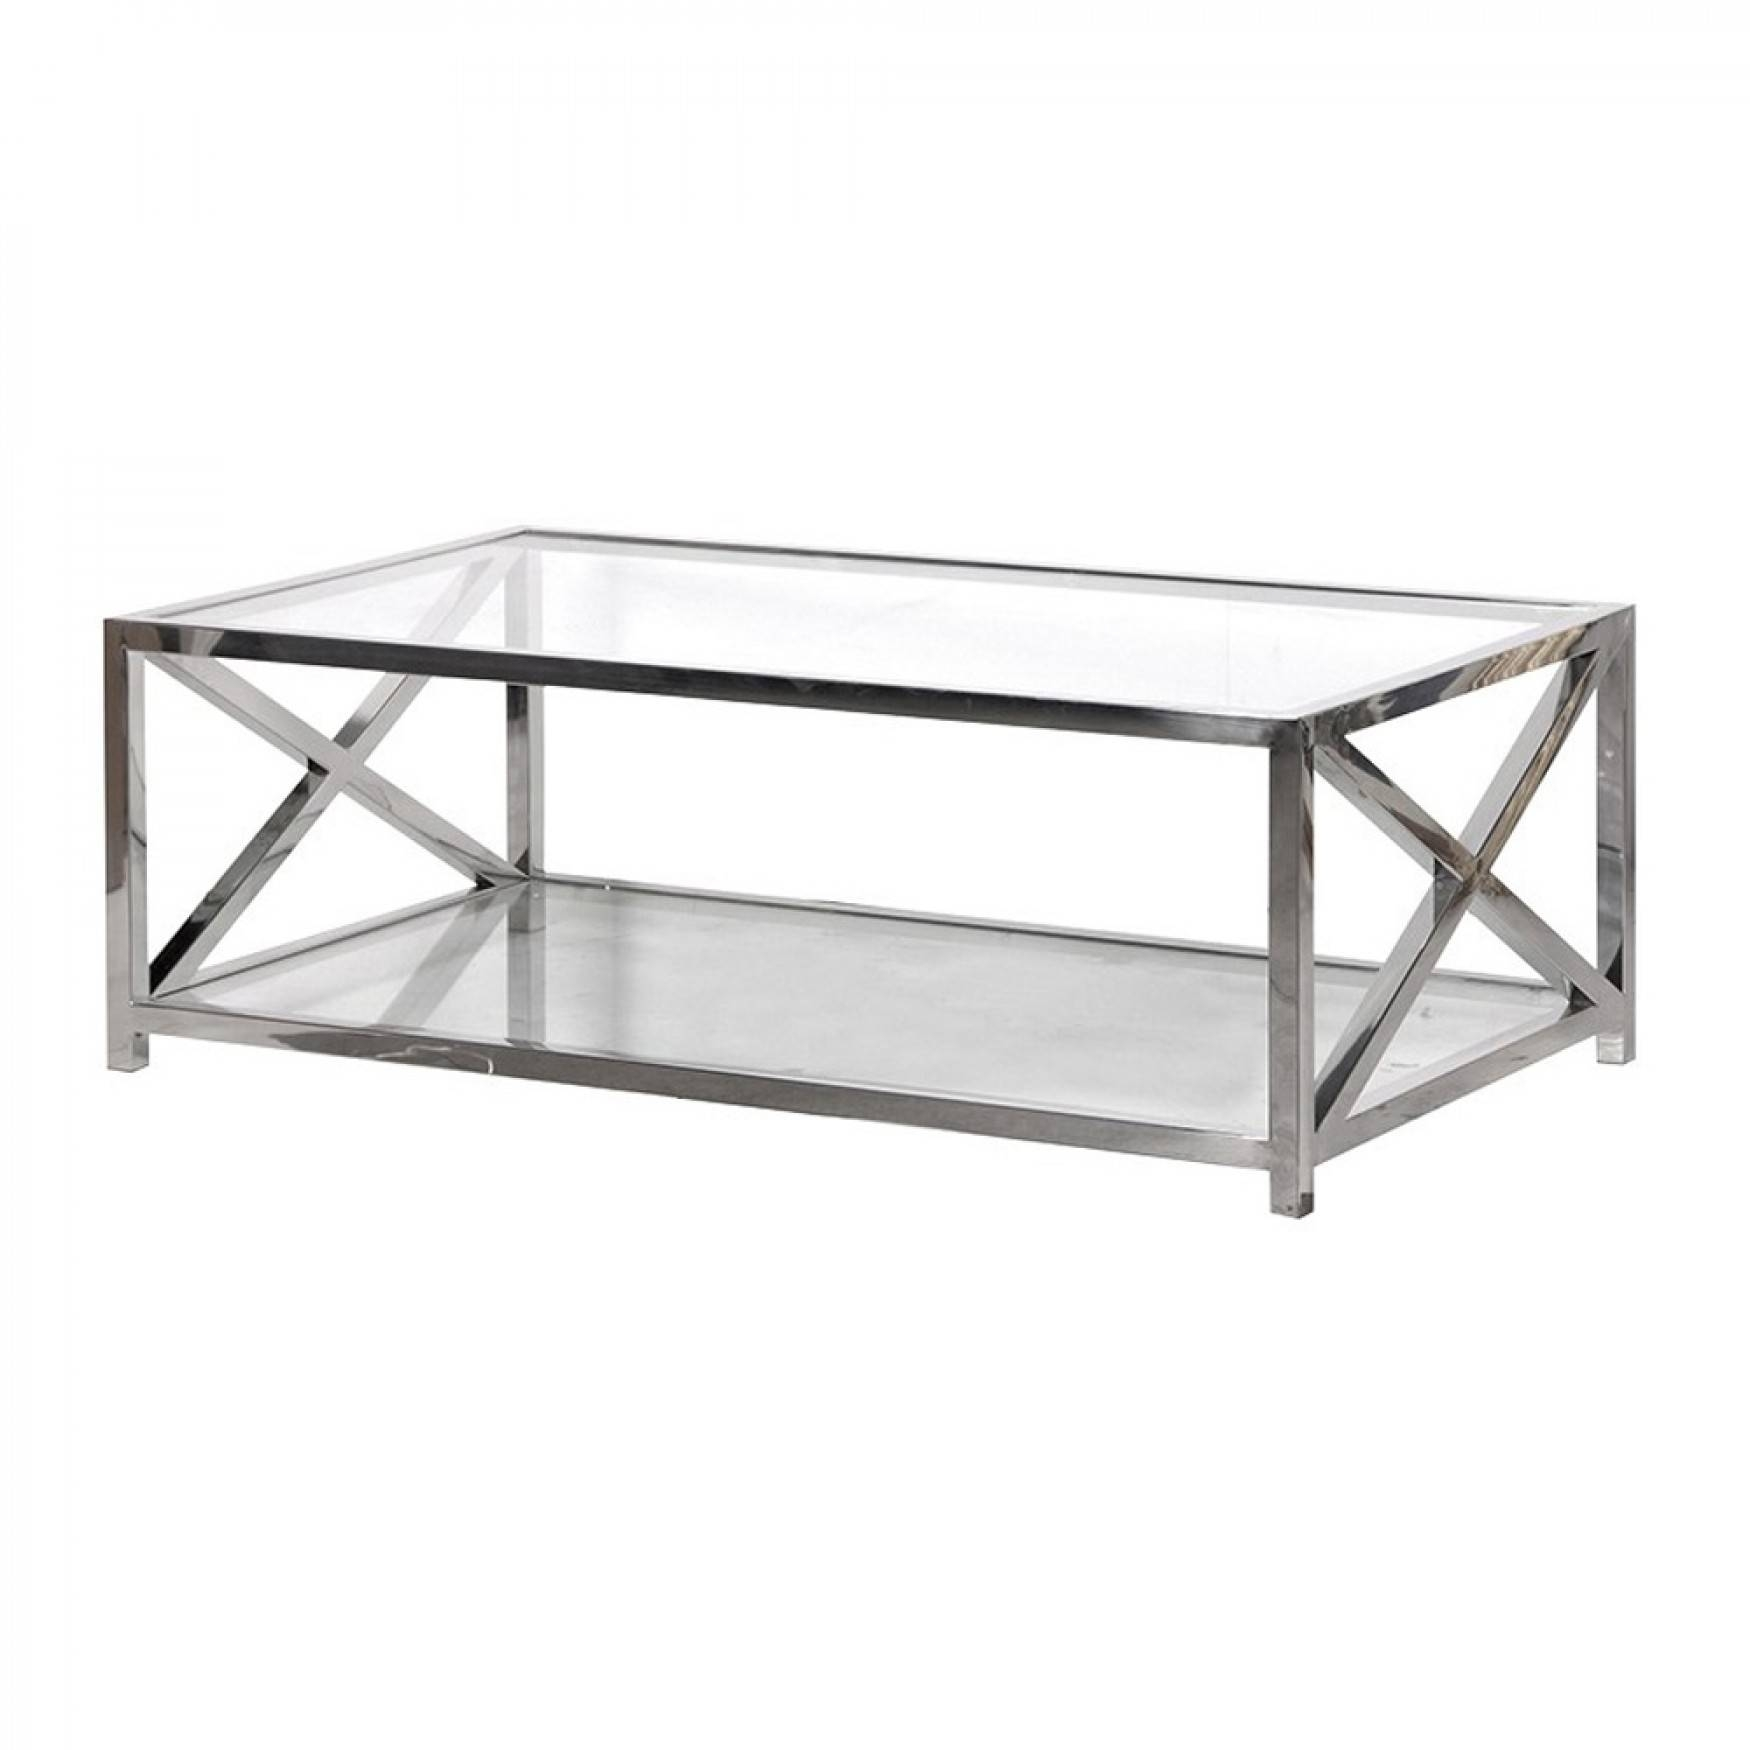 Coffee Tables : Large Glass/steel Coffee Table inside Glass Steel Coffee Tables (Image 9 of 30)